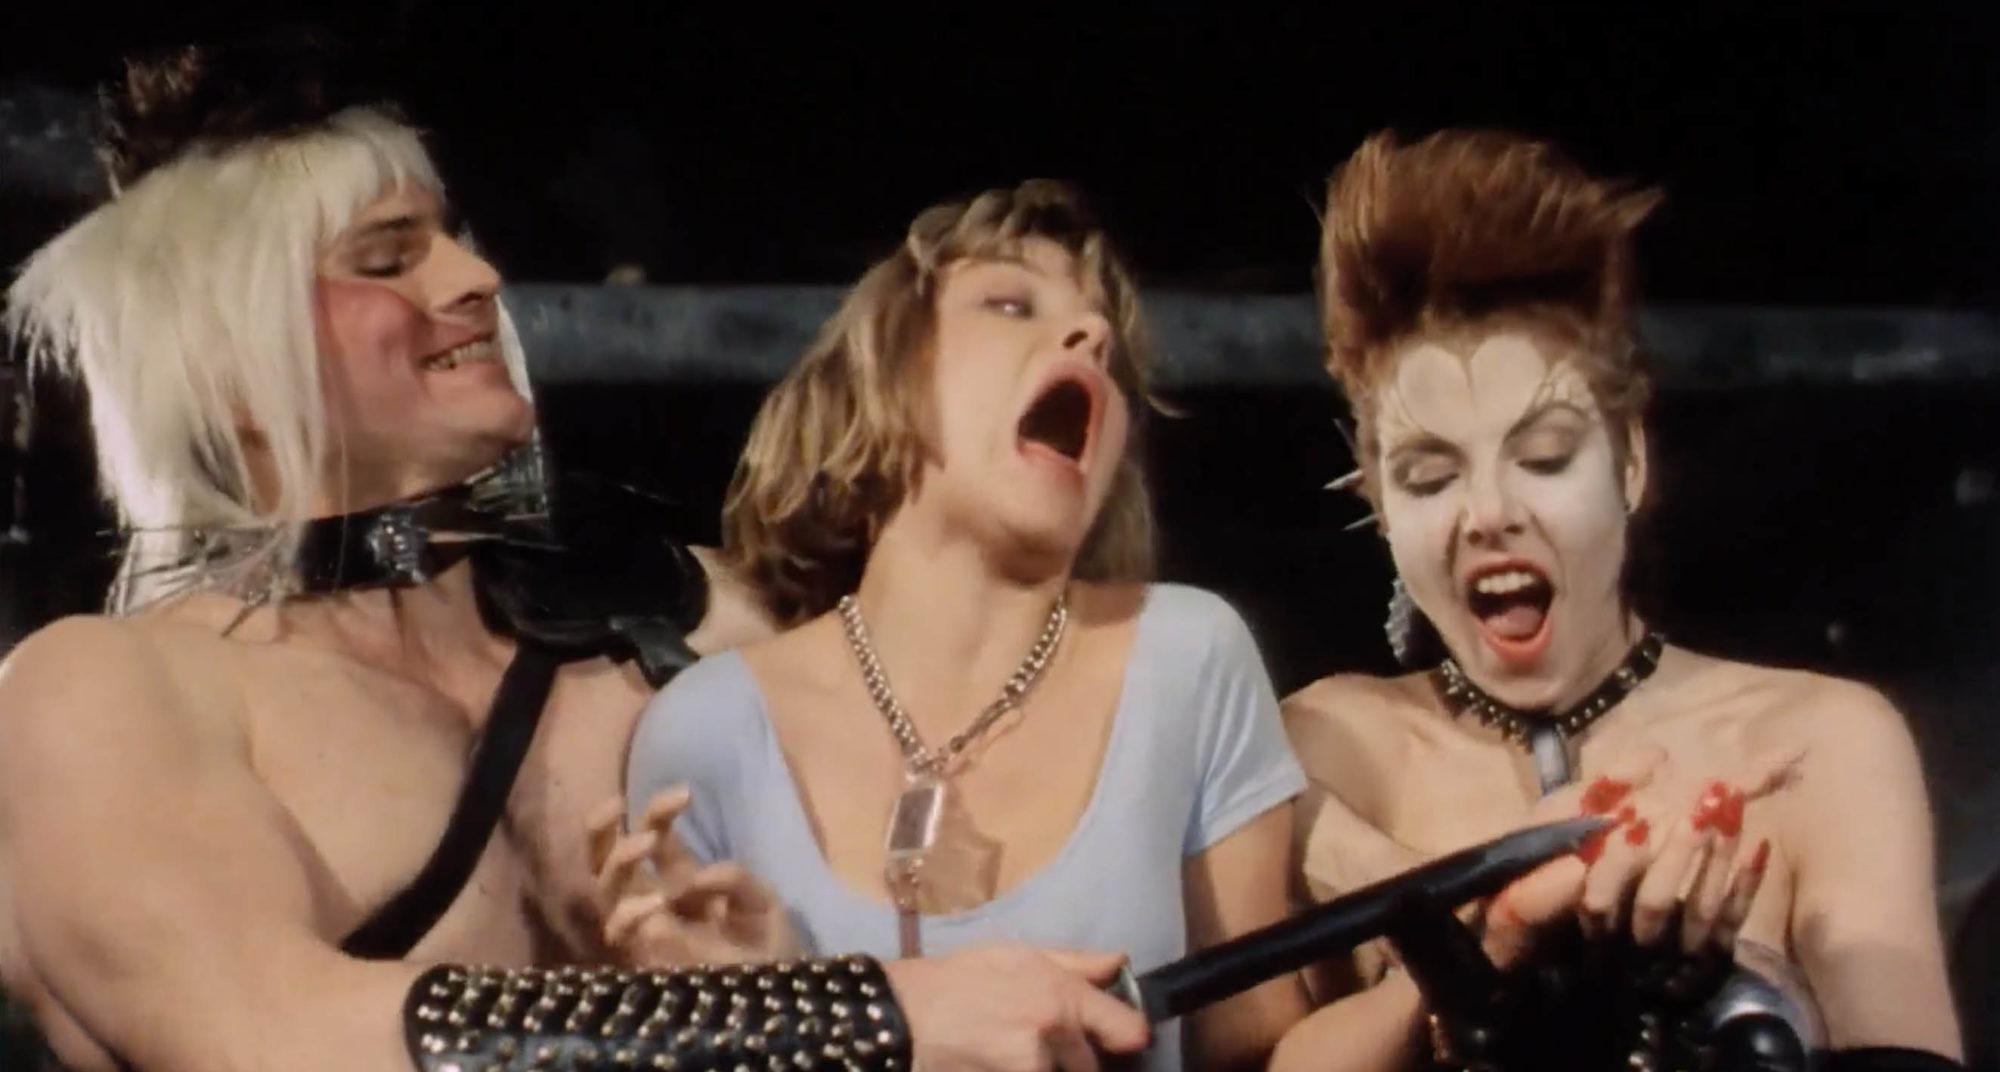 Janelle Brady, Robert Pritchard and Lauren Heather McMahon in Class Of Nuke 'Em High (1986)